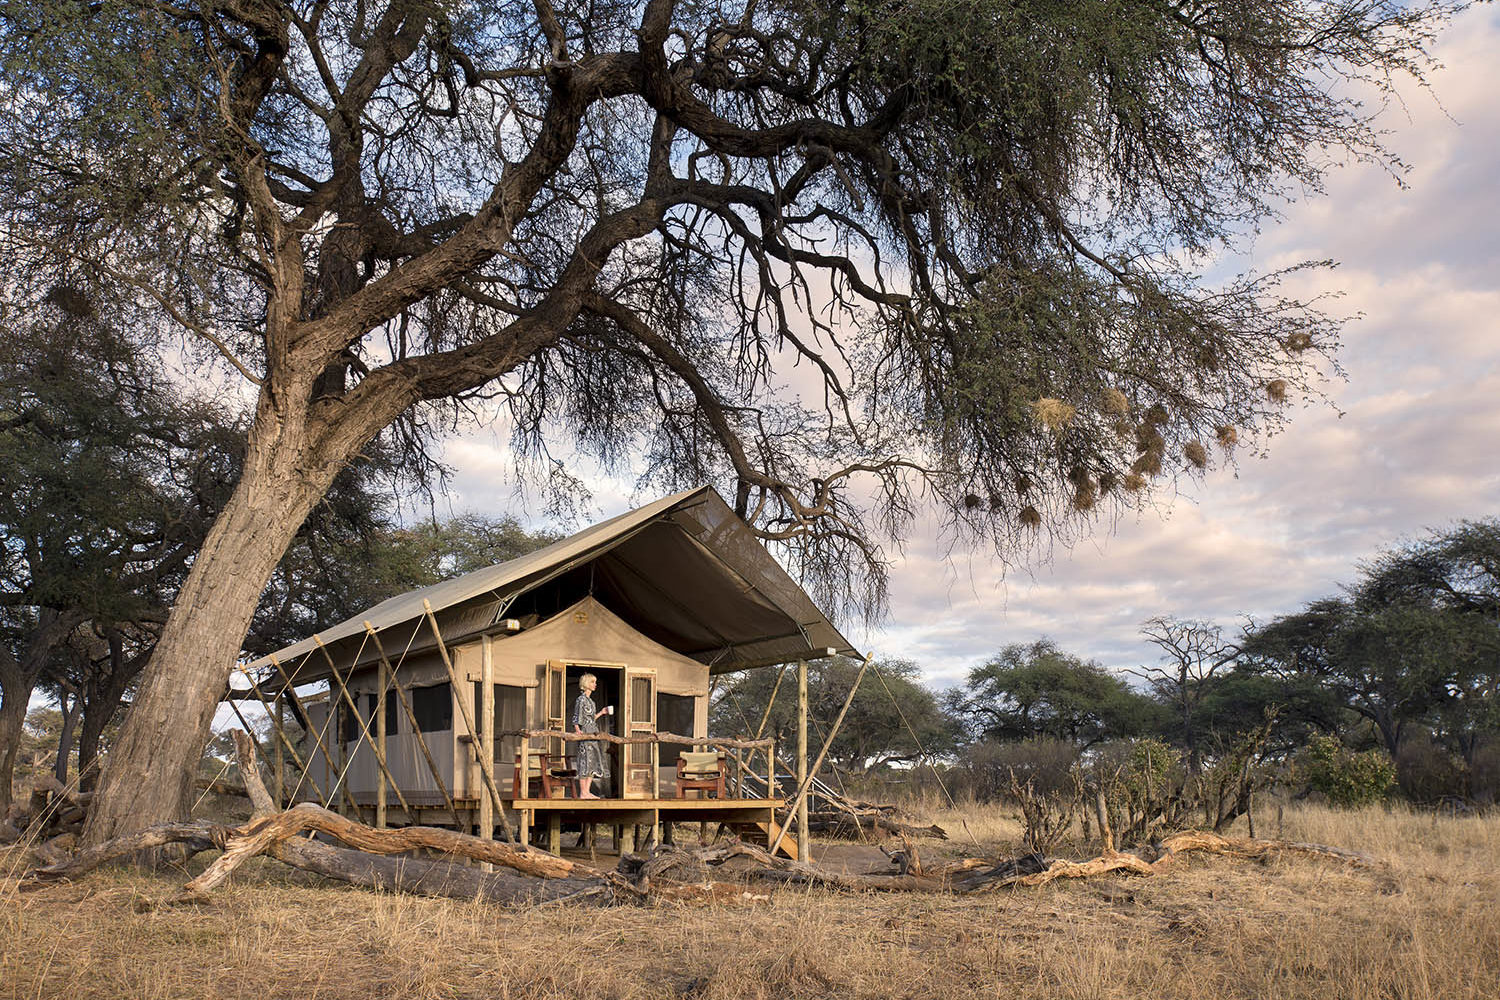 somalisa expeditions zimbabwe-zambia-in-style-hwange-national-park-african-bush-camps-traditional-safari-experience-bedroom-from-outside